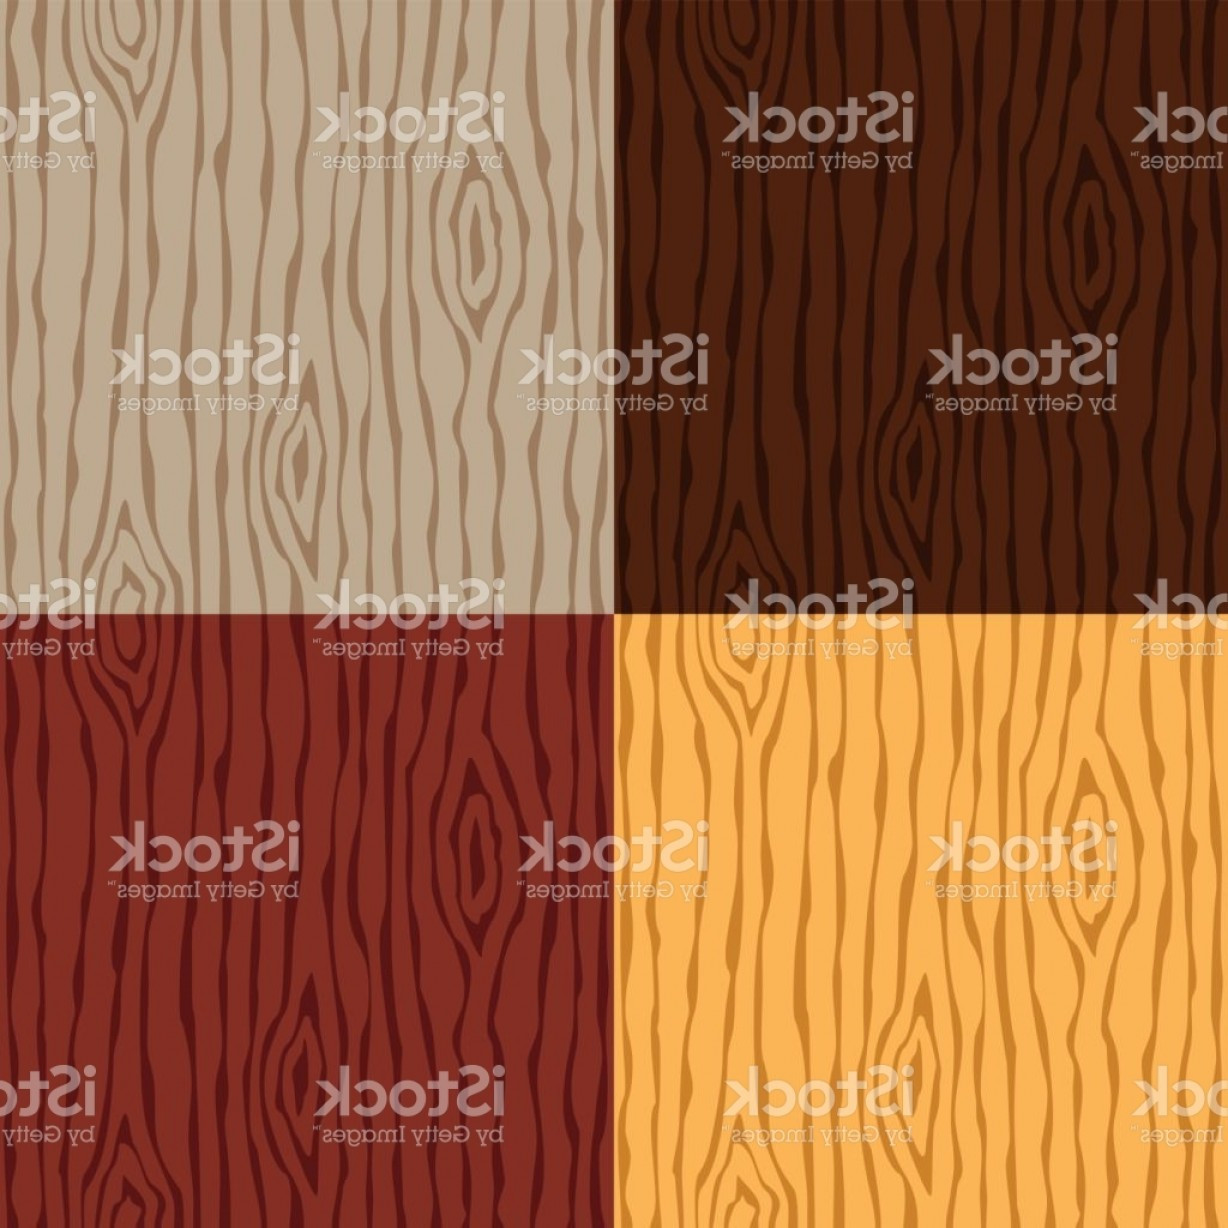 hardwood floor texture seamless of vector wood grain artwork lazttweet within wood grain texture set seamless wooden pattern abstract background gm